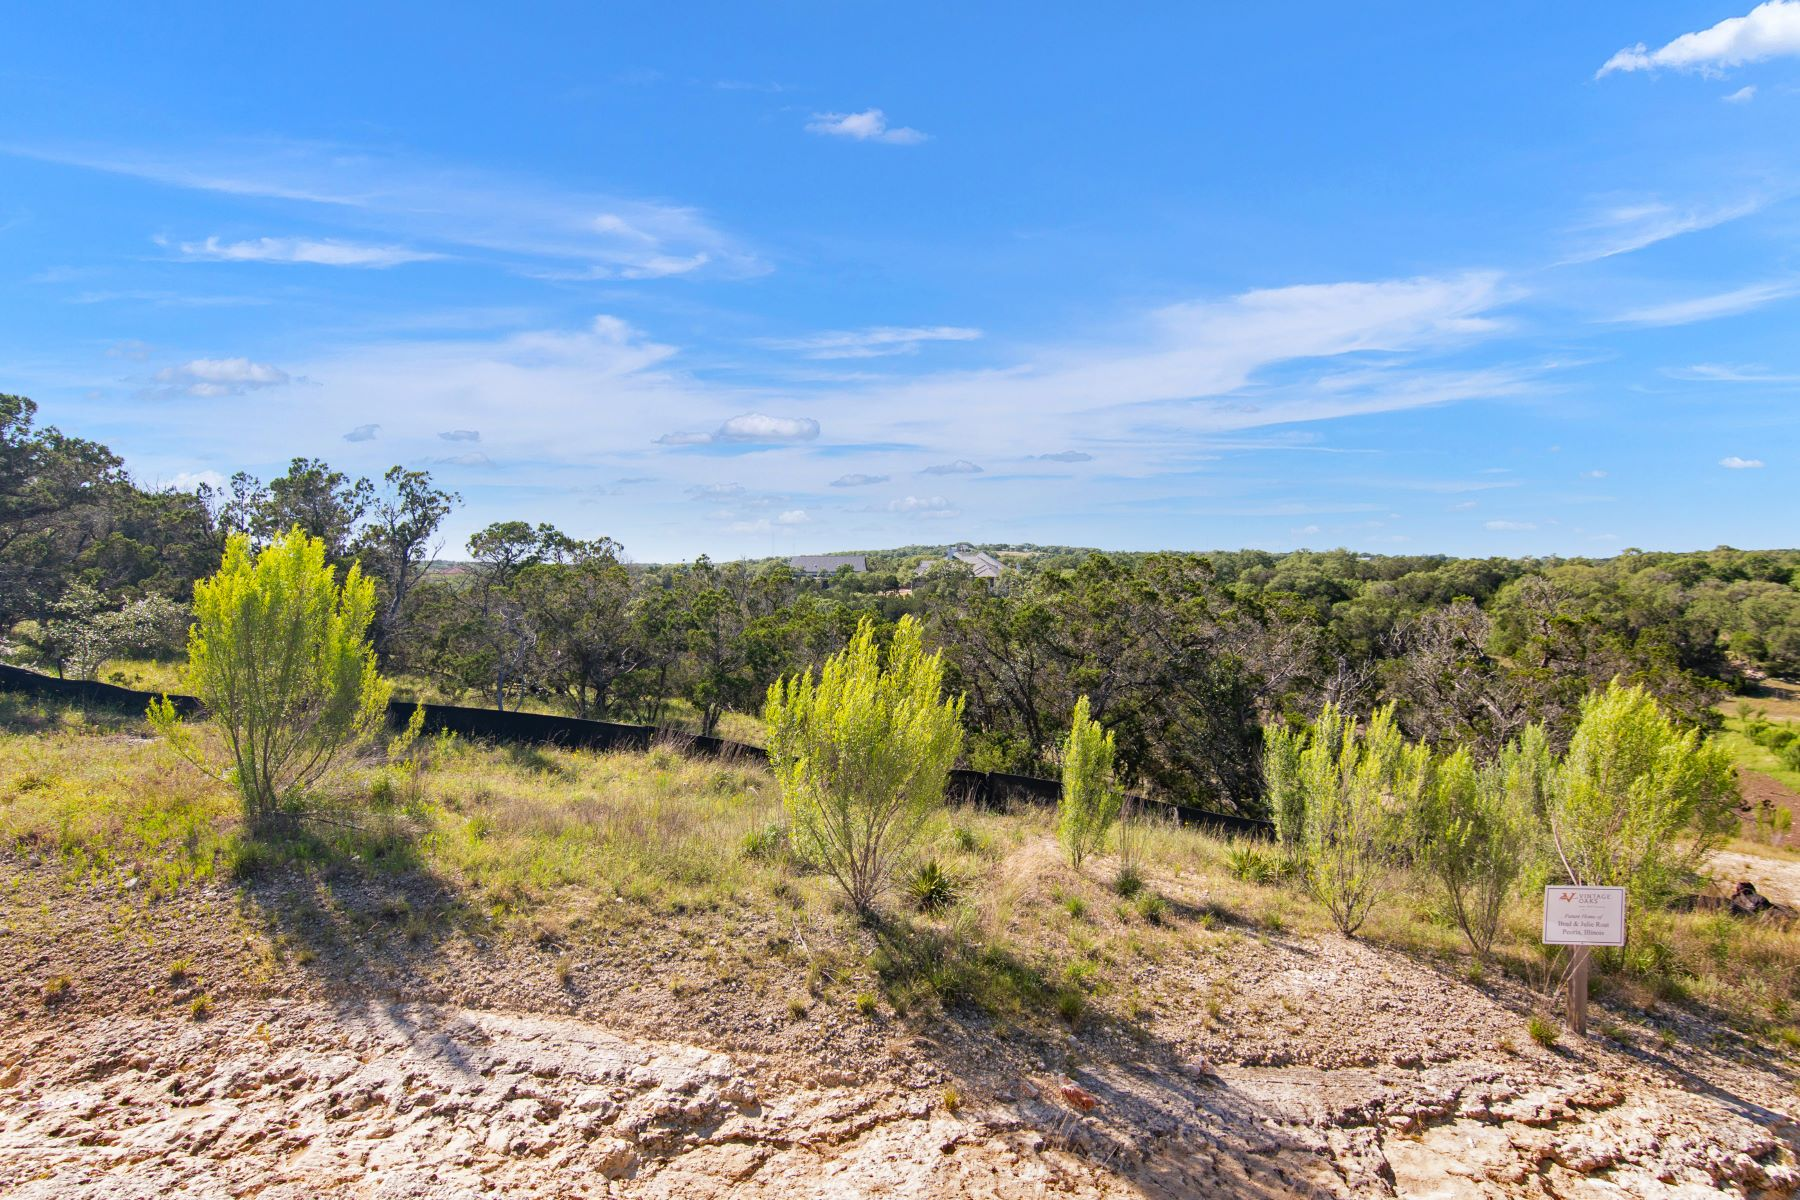 Land for Sale at 2011 Tempranillo, New Braunfels, TX 78132 2011 Tempranillo New Braunfels, Texas 78132 United States